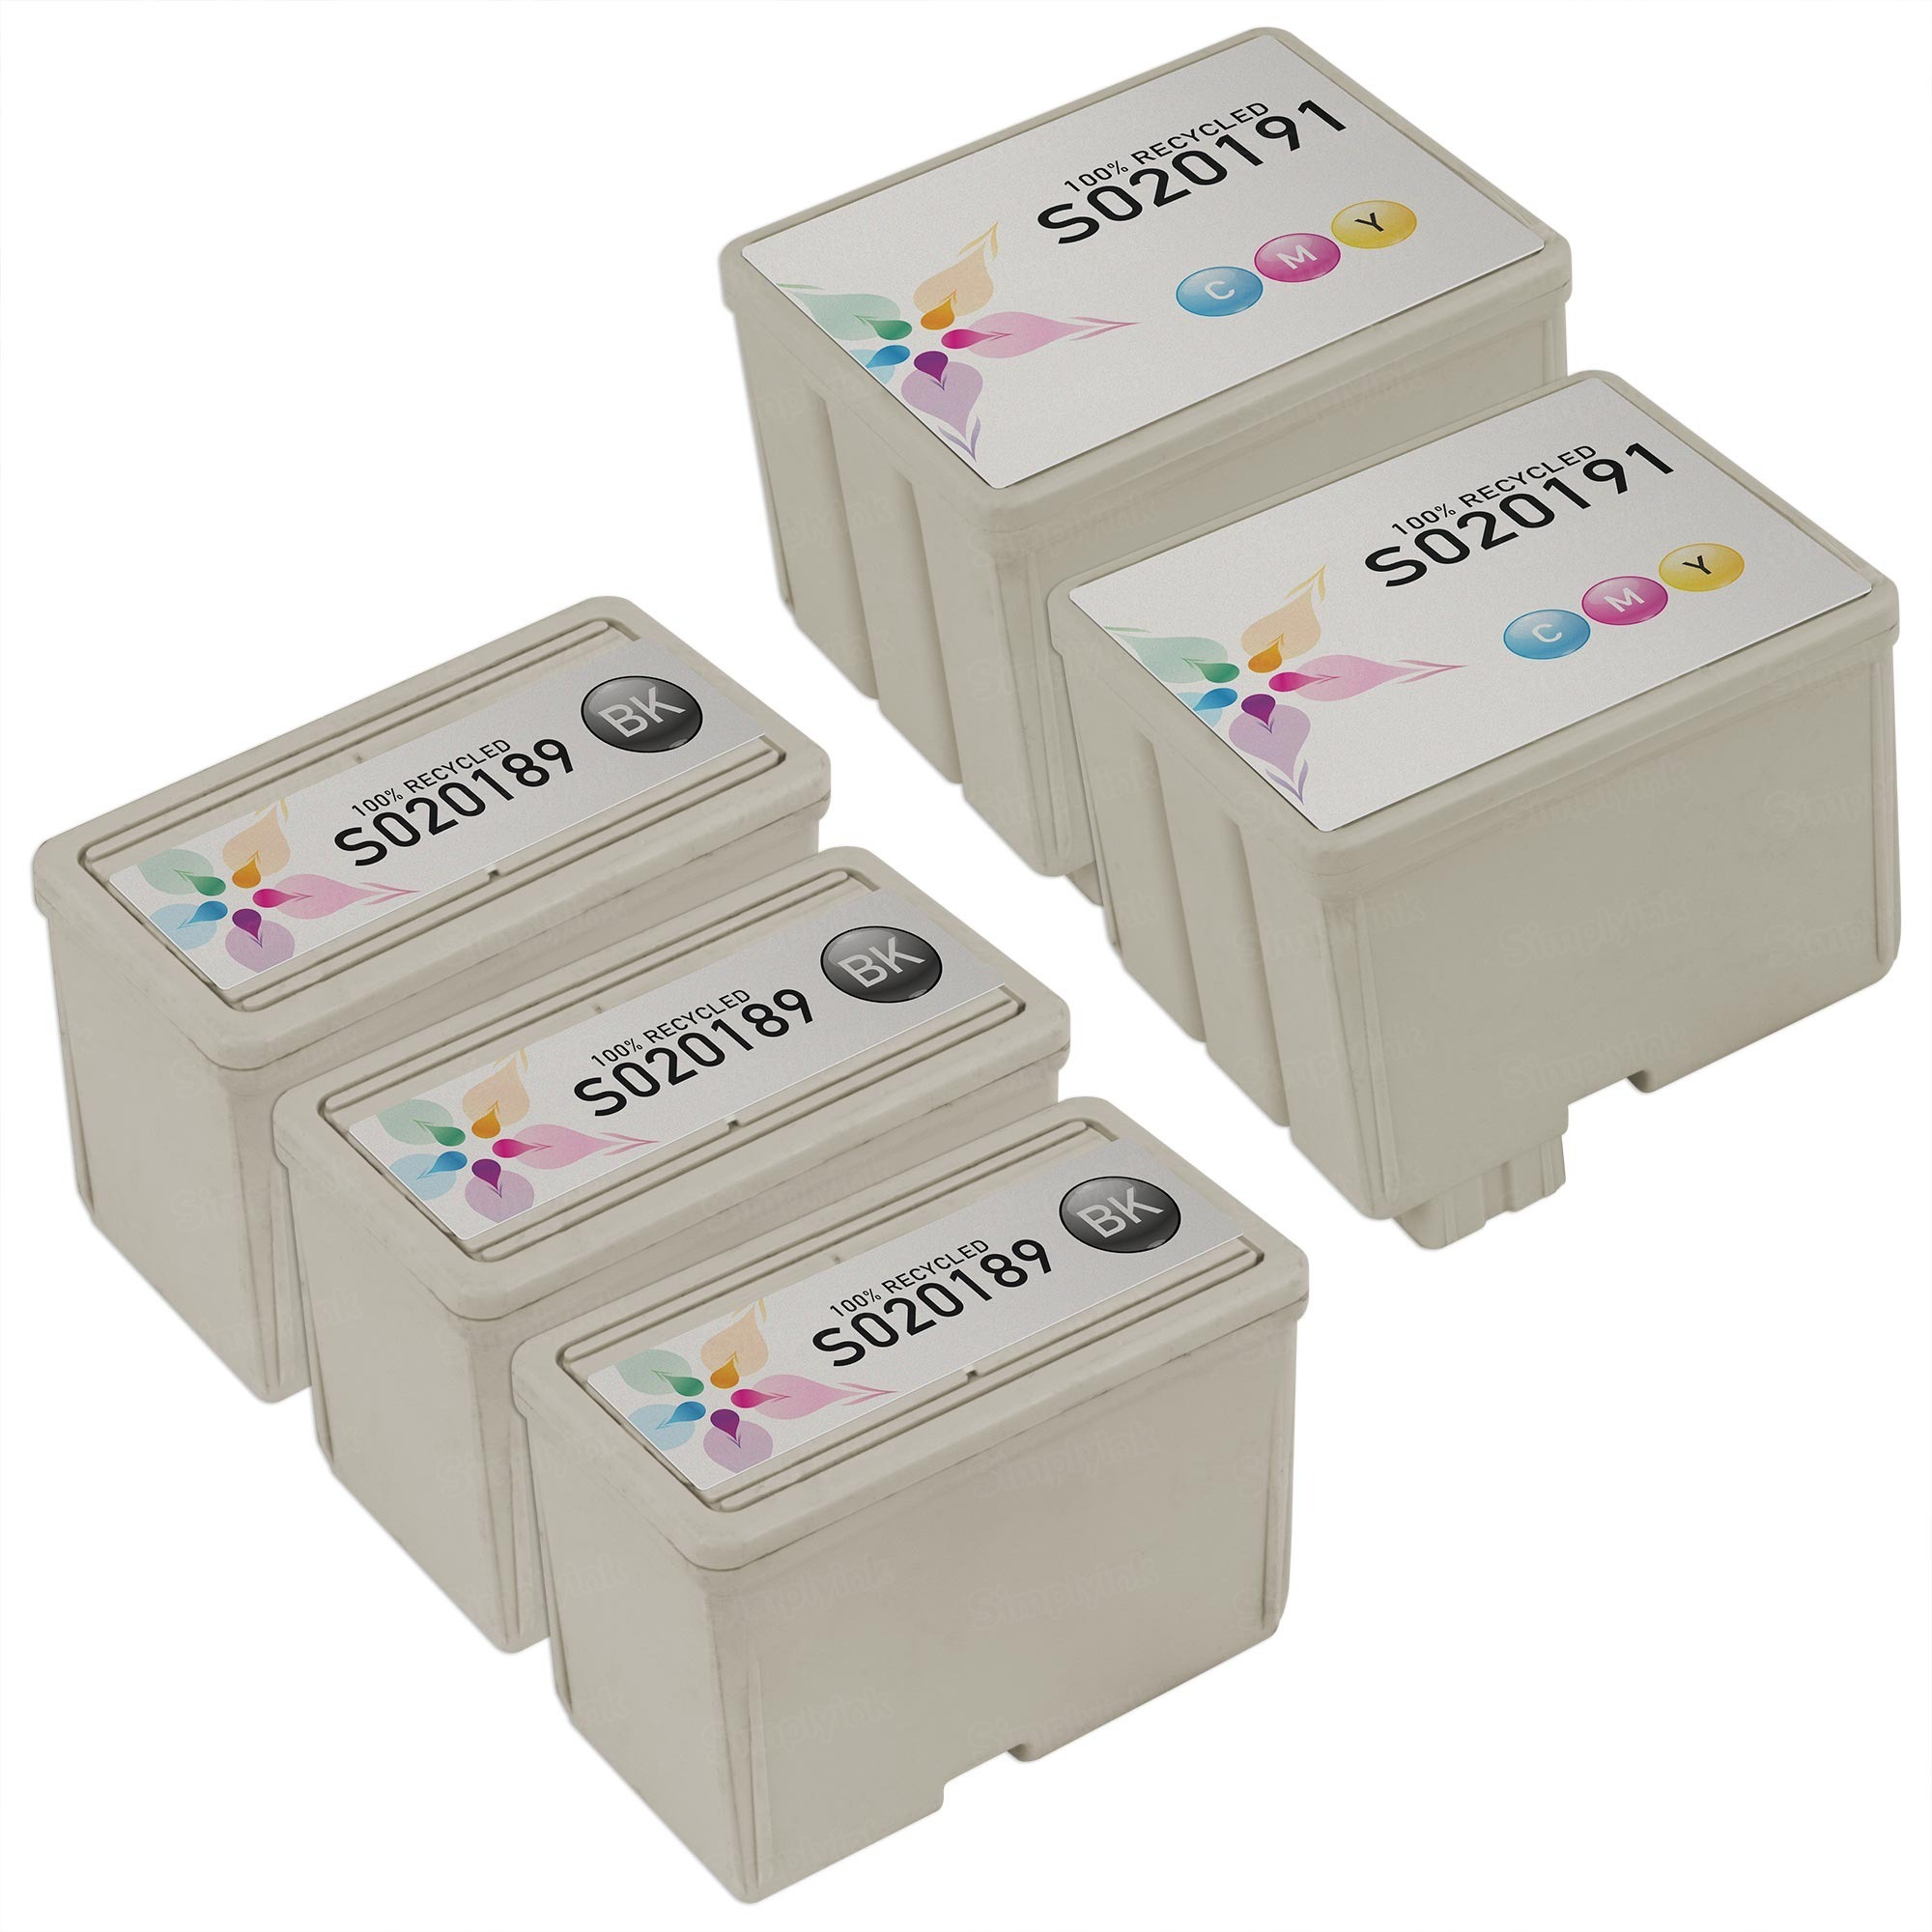 Inkjet Supplies for Epson Printers - Compatible Bulk Set of 5 Ink Cartridges 3 Black Epson S020189 (S189108) and 2 Color Epson S020191 (S191089)